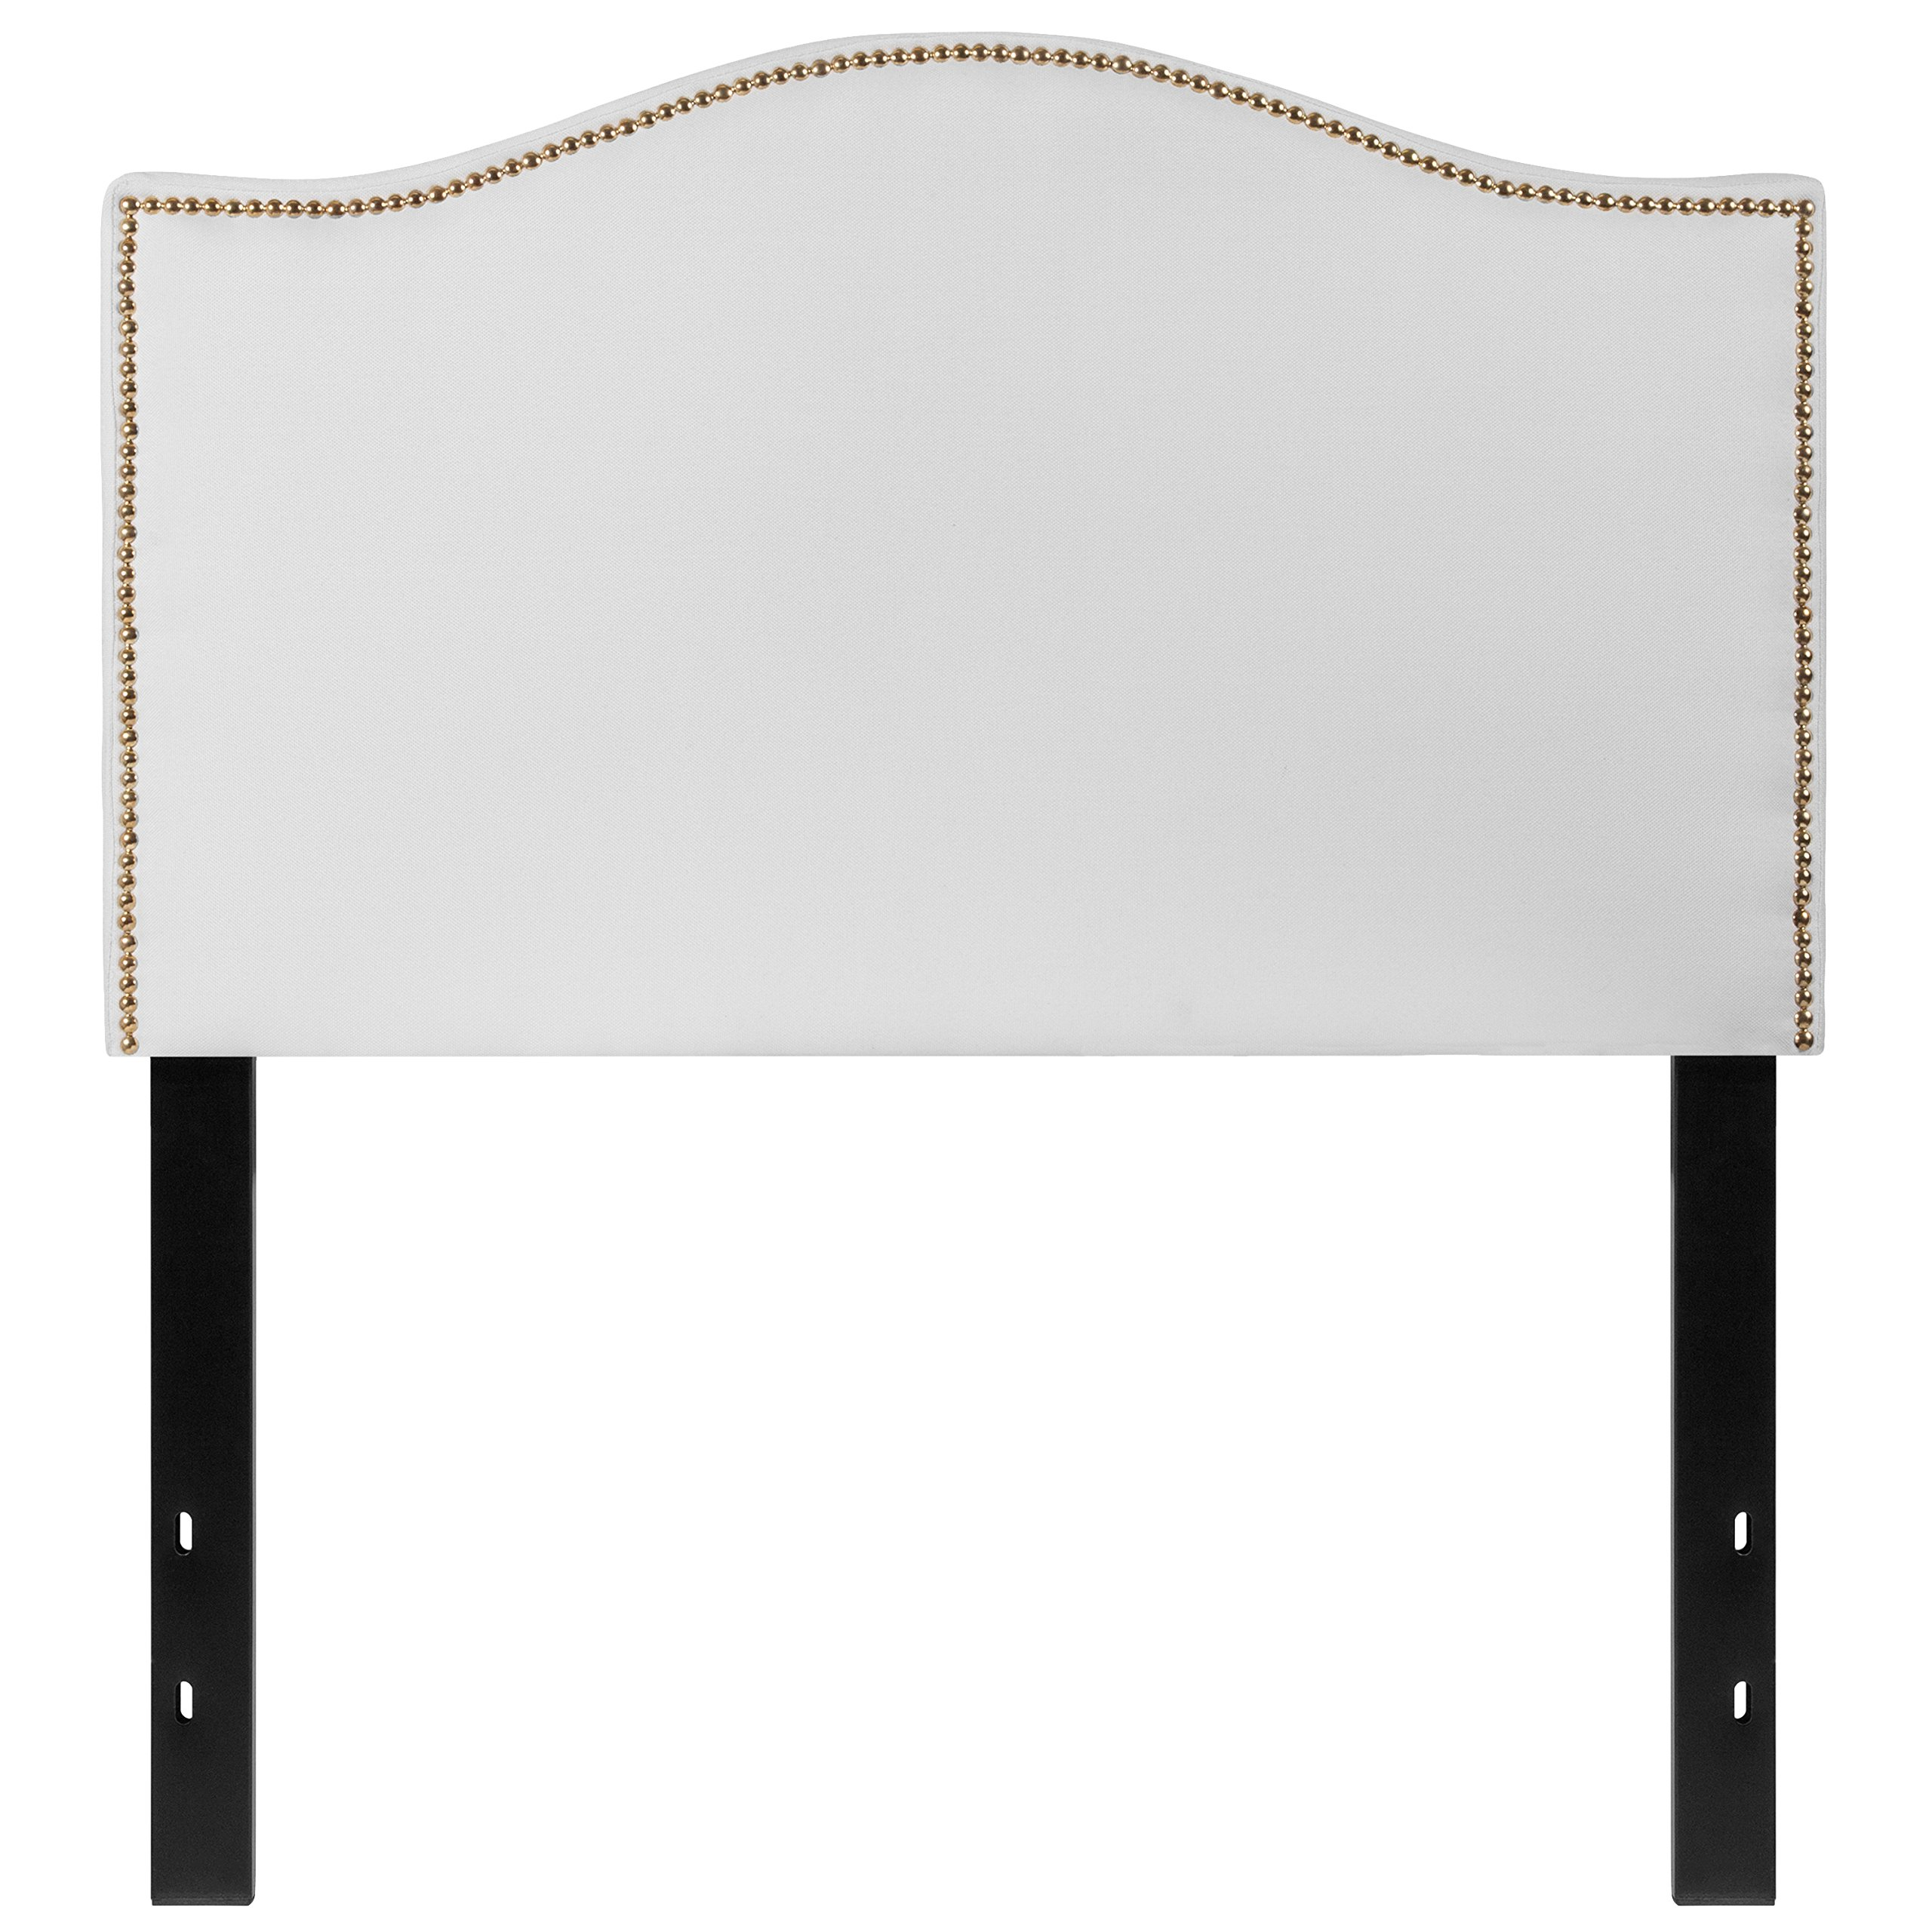 Flash Furniture Lexington Upholstered Twin Size Headboard with Decorative Nail Trim in White Fabric - HG-HB1707-T-W-GG